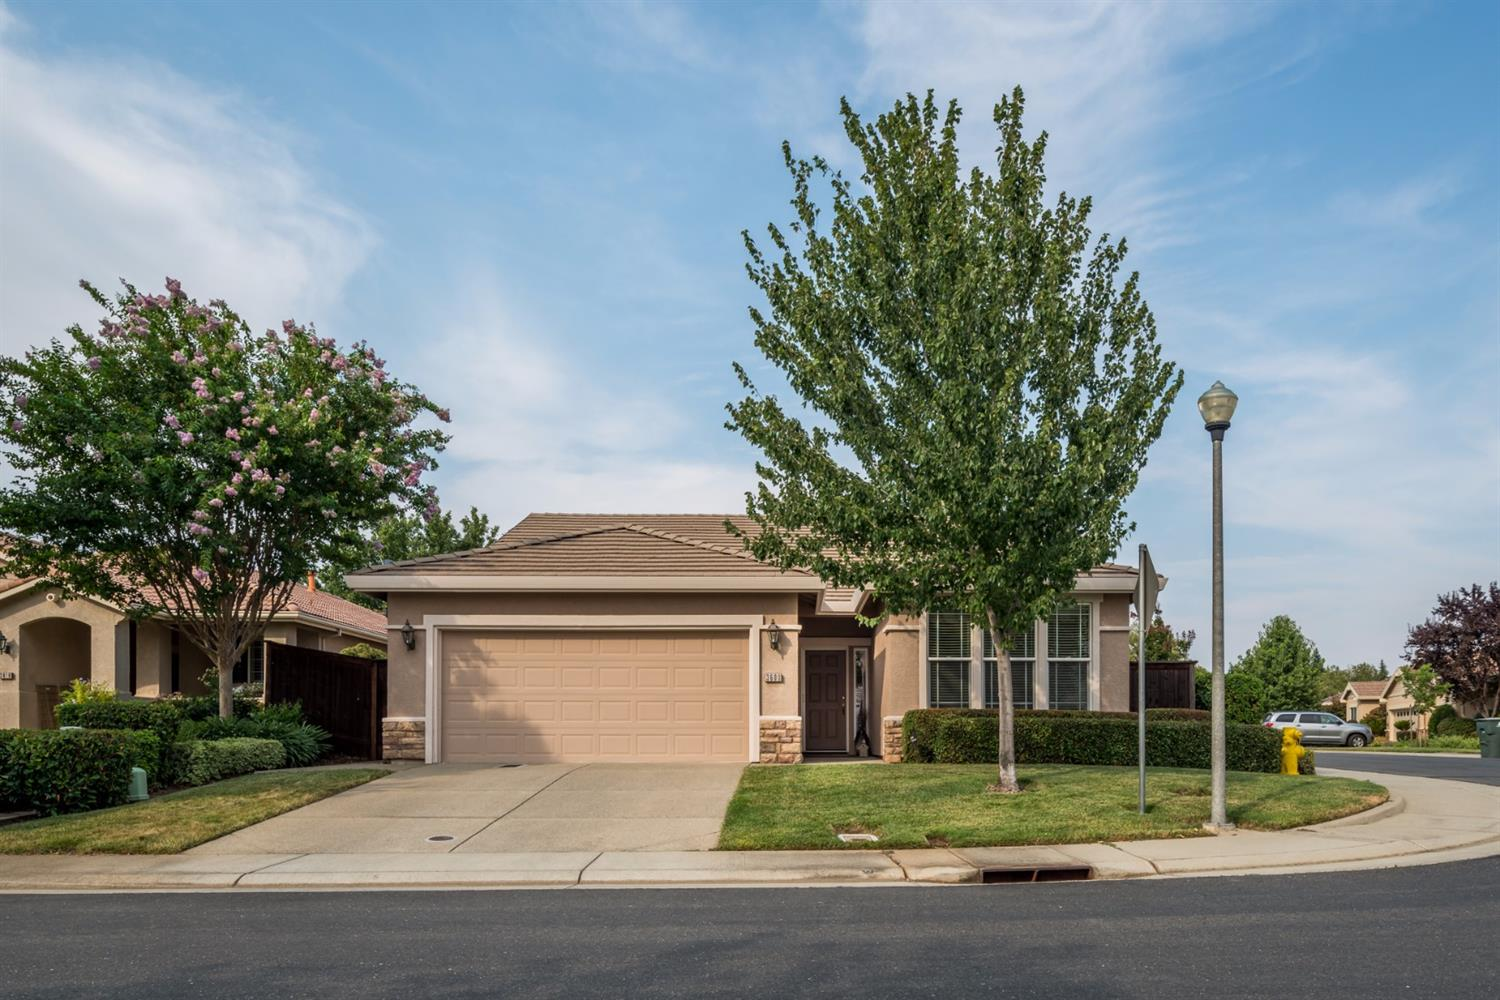 3600 Brighton Ct. Rocklin, CA 95765